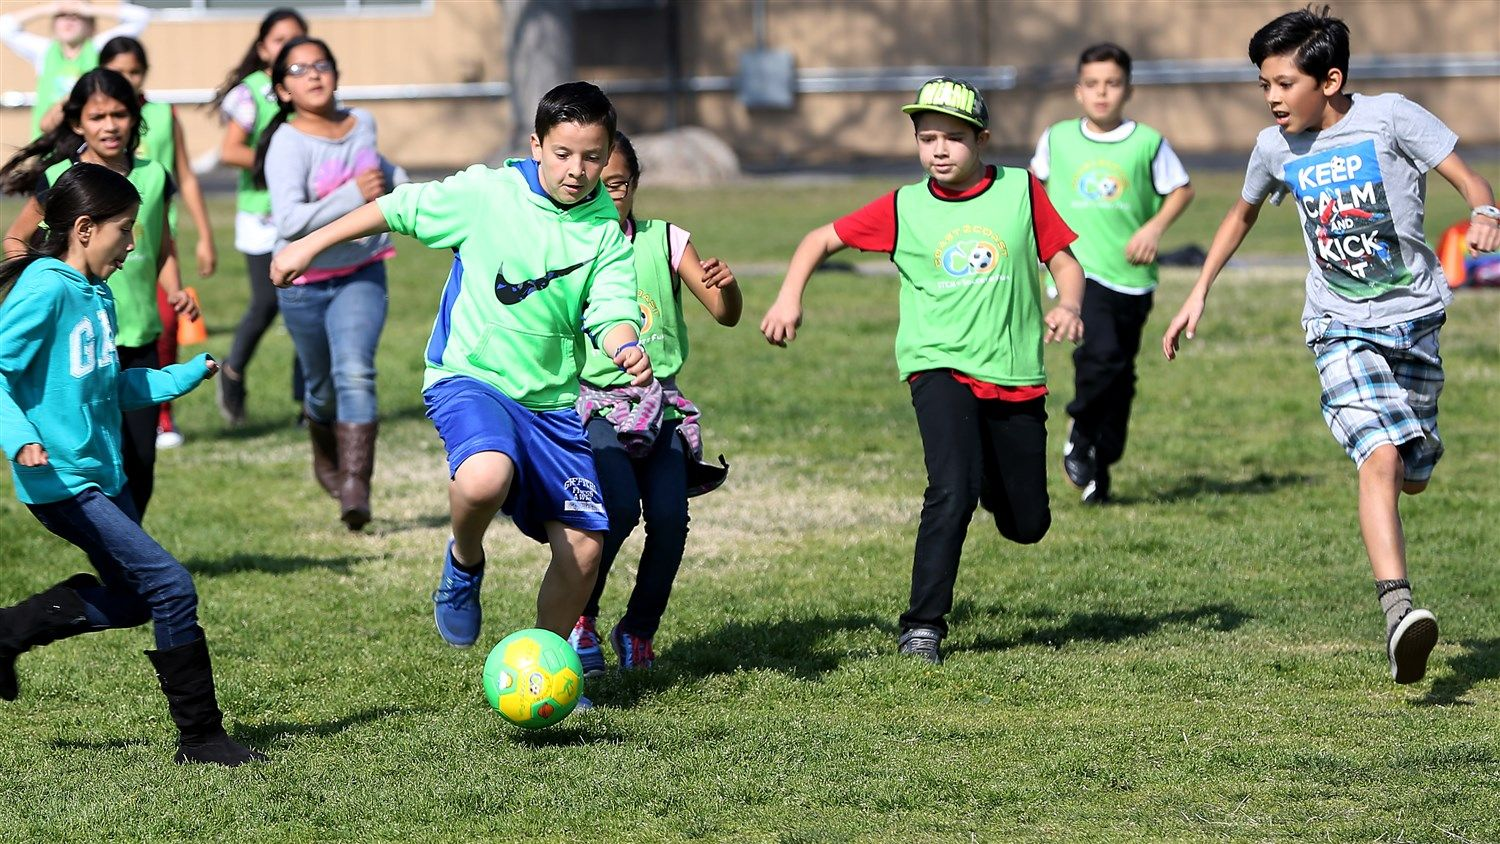 Soccer Games Teach Science And Math Good Behavior To Boot Kids Cheering Soccer Kids Races